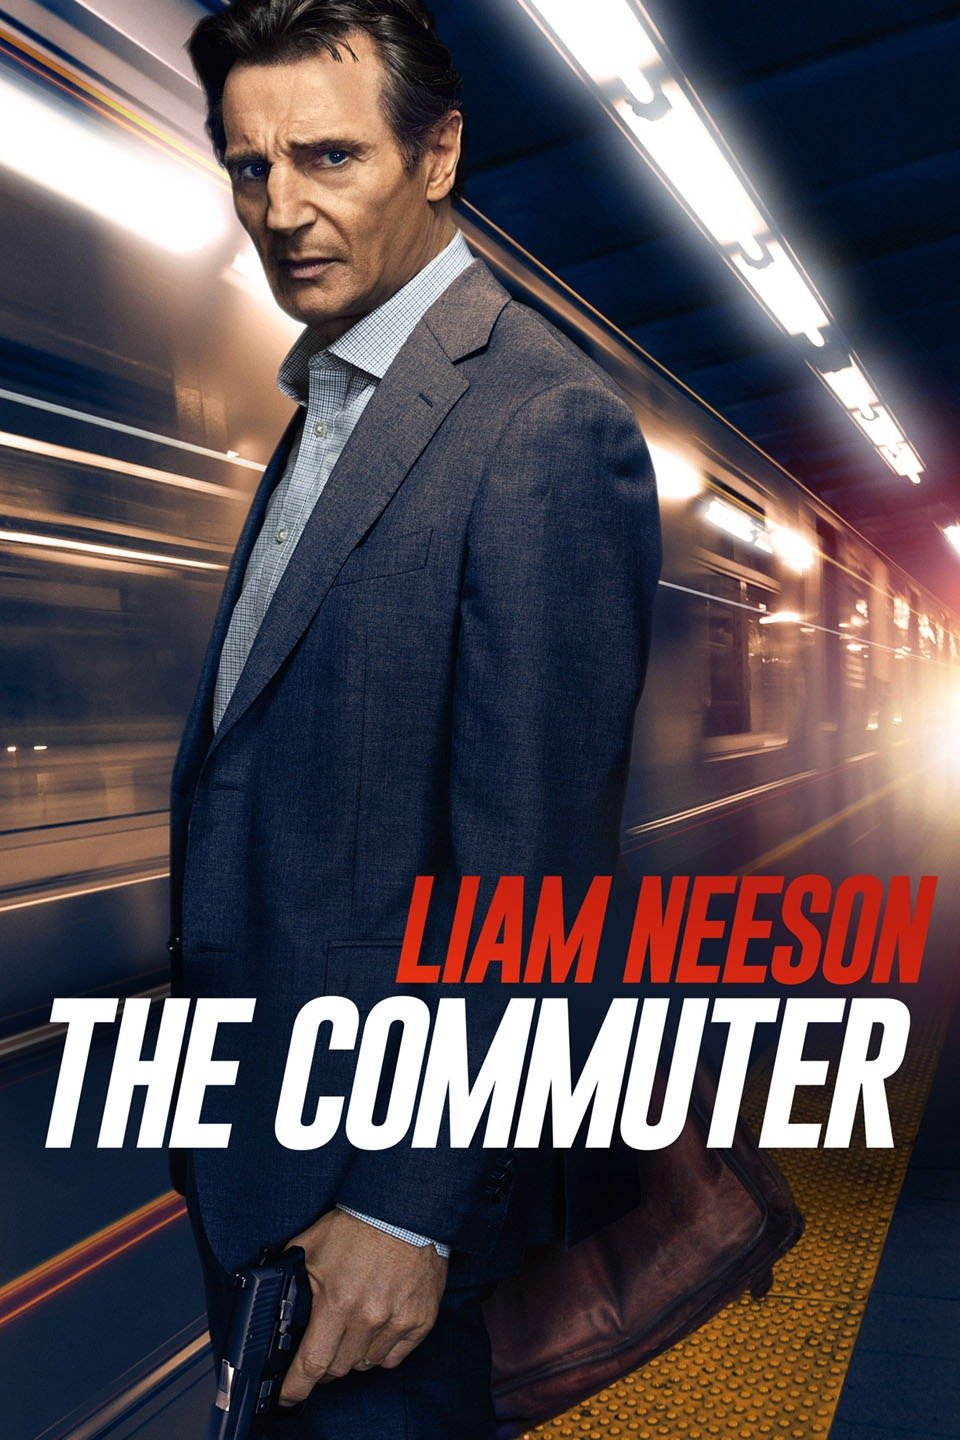 Image result for the commuter film